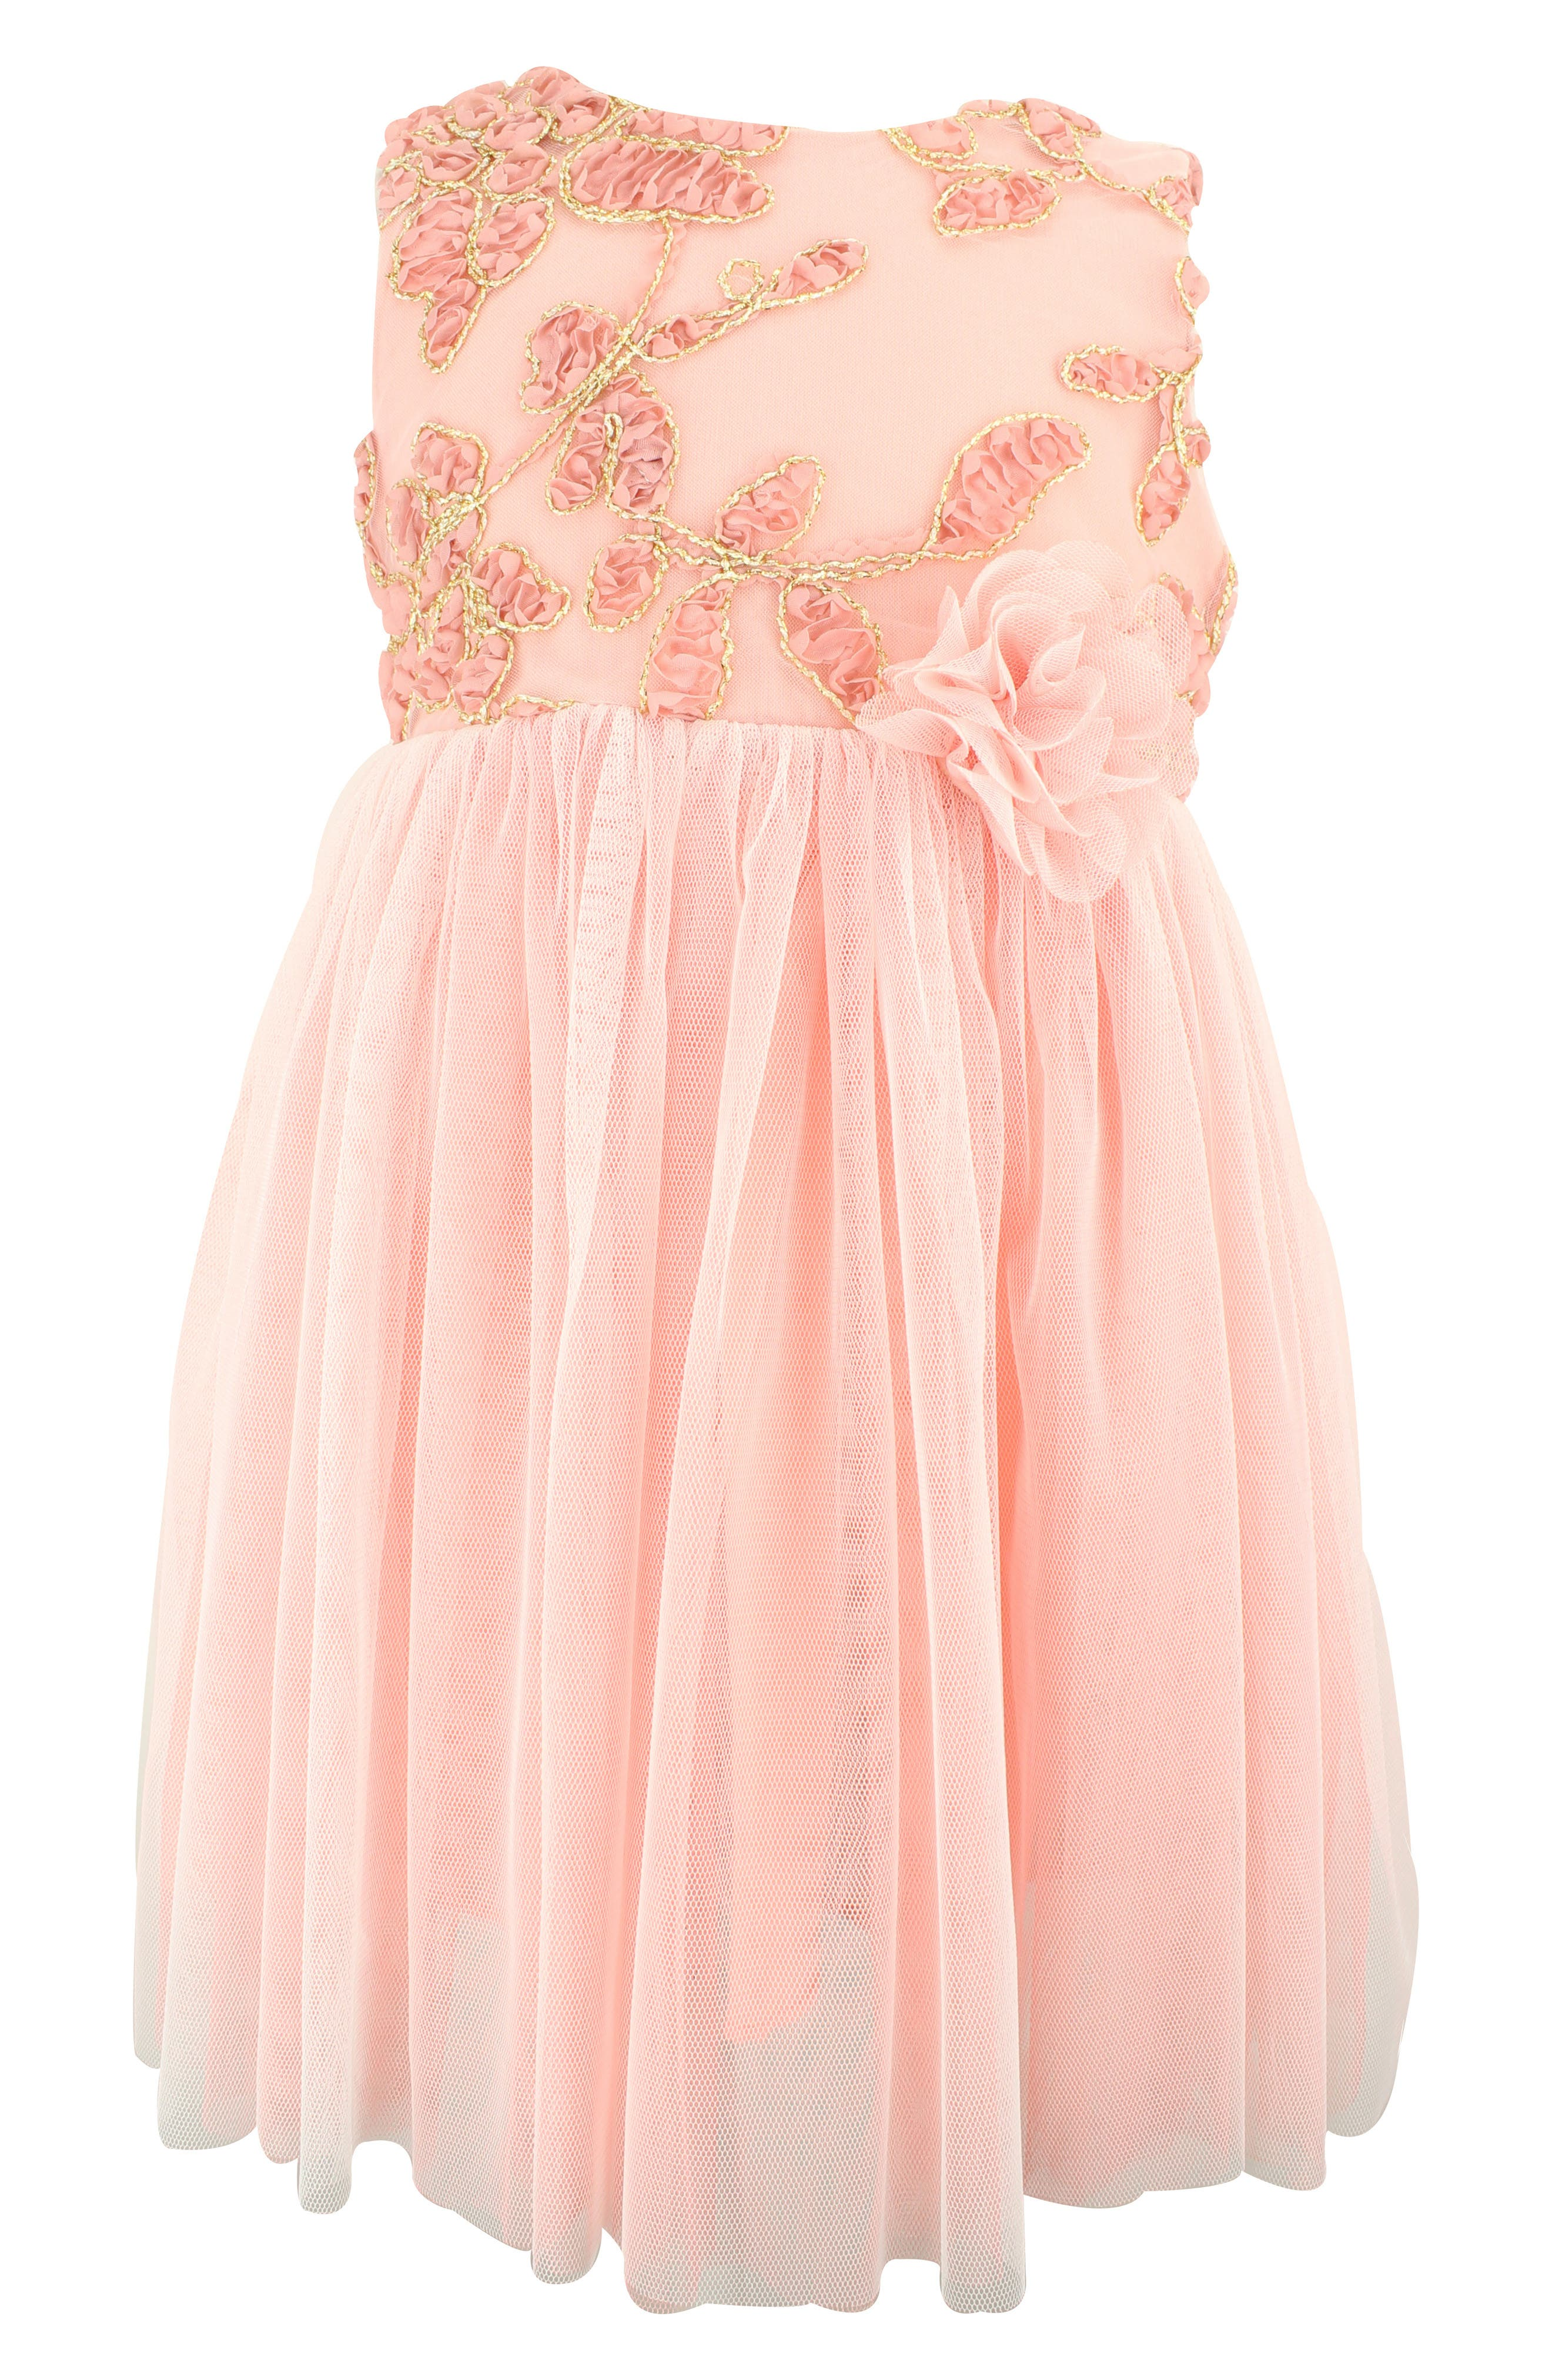 POPATU, Floral Embroidered Tulle Dress, Main thumbnail 1, color, DUSTY PINK